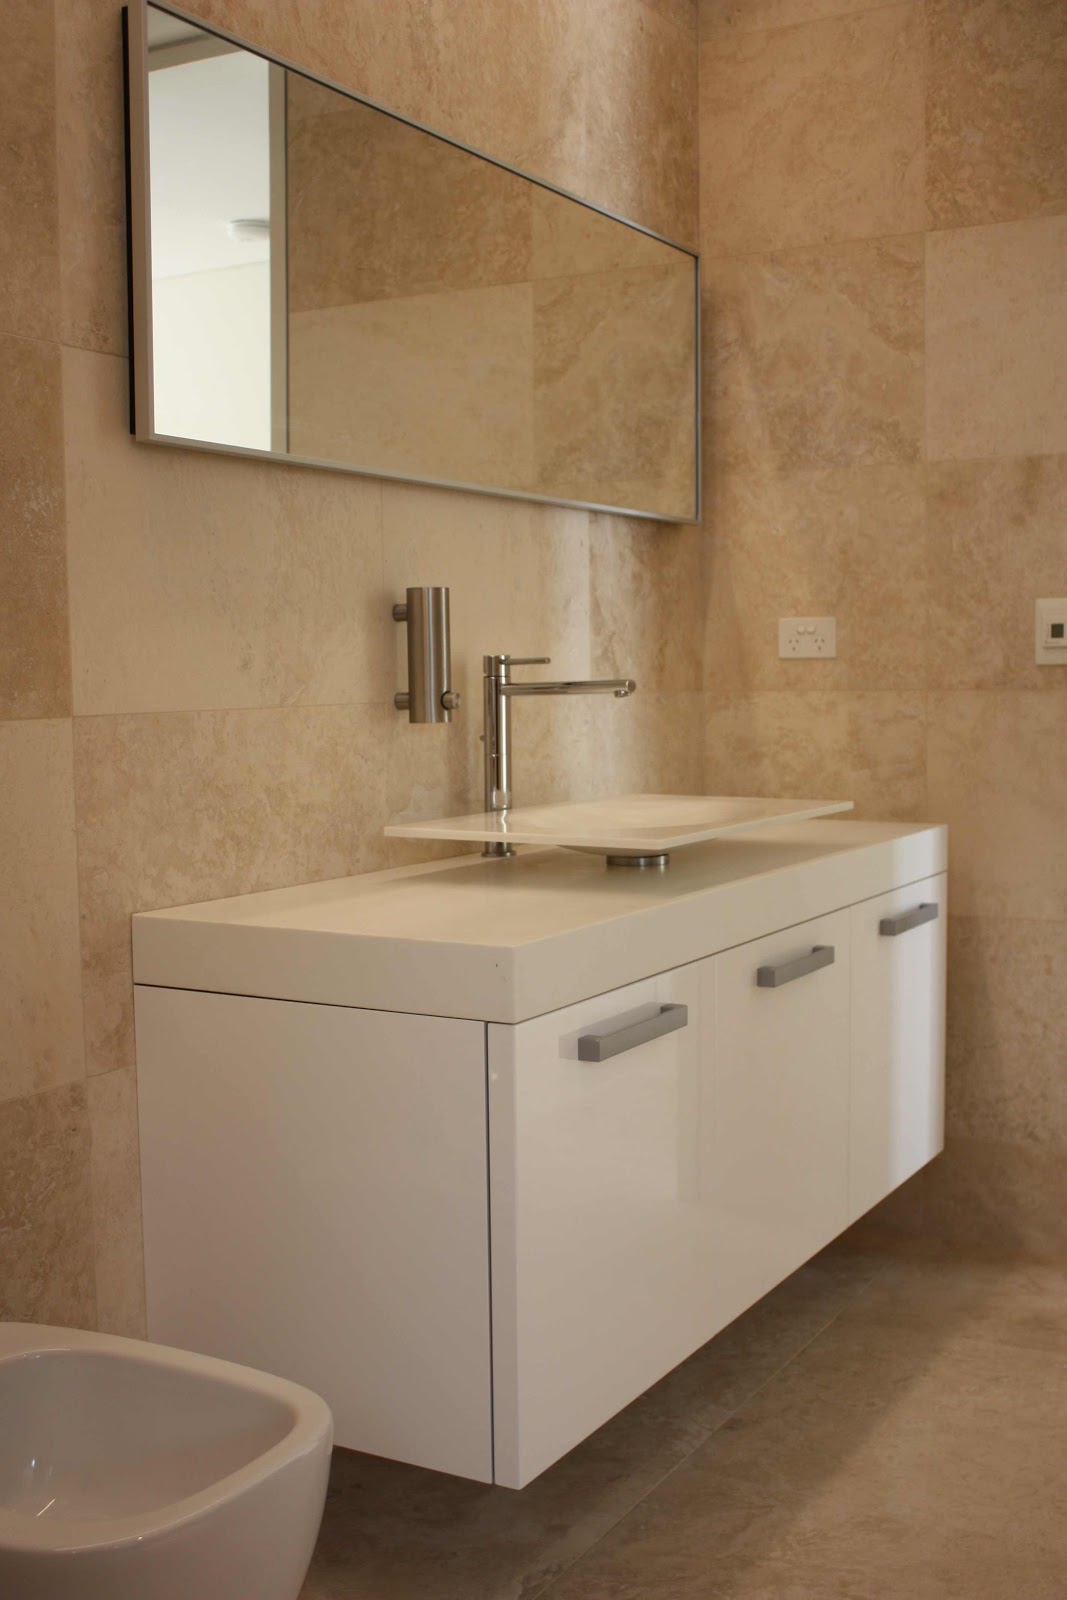 Minosa: Travertine Bathrooms, The Natural Choice